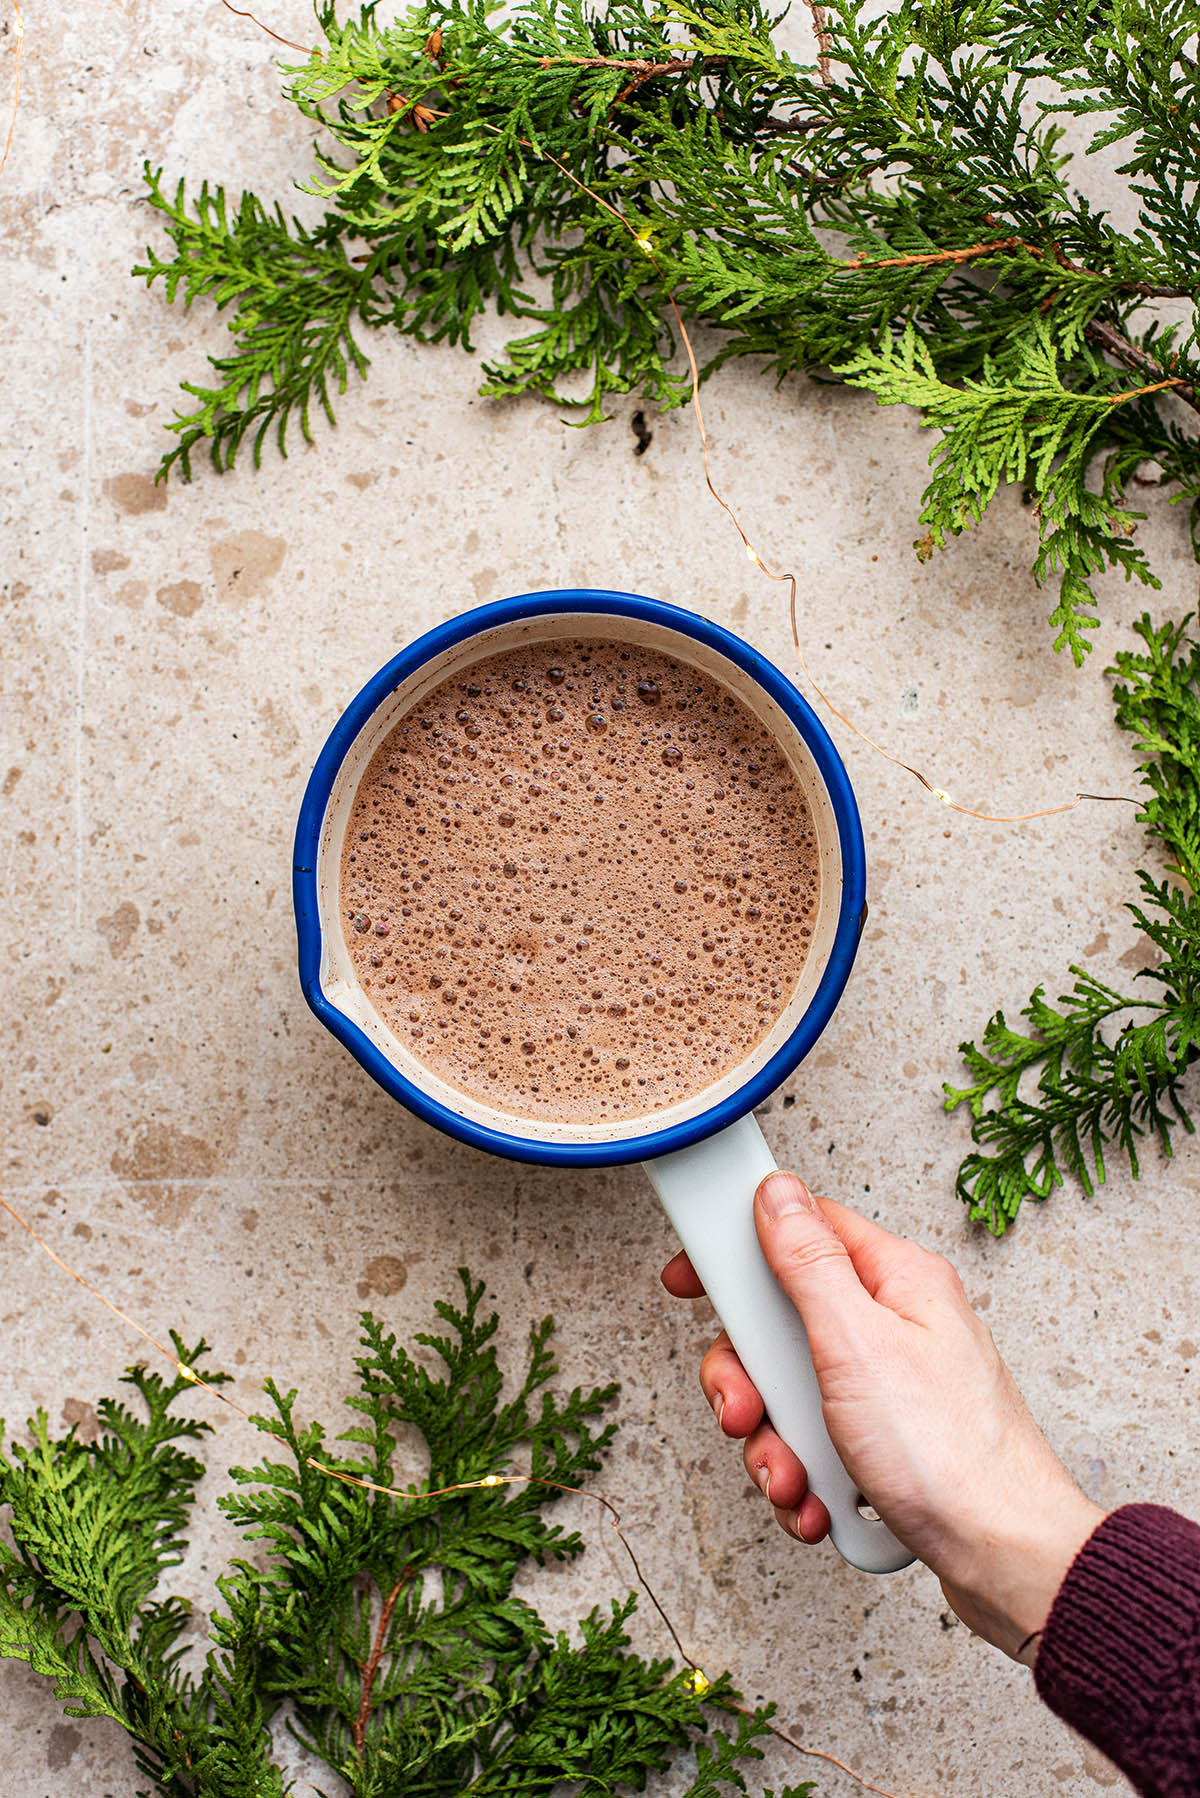 Blended hot chocolate.